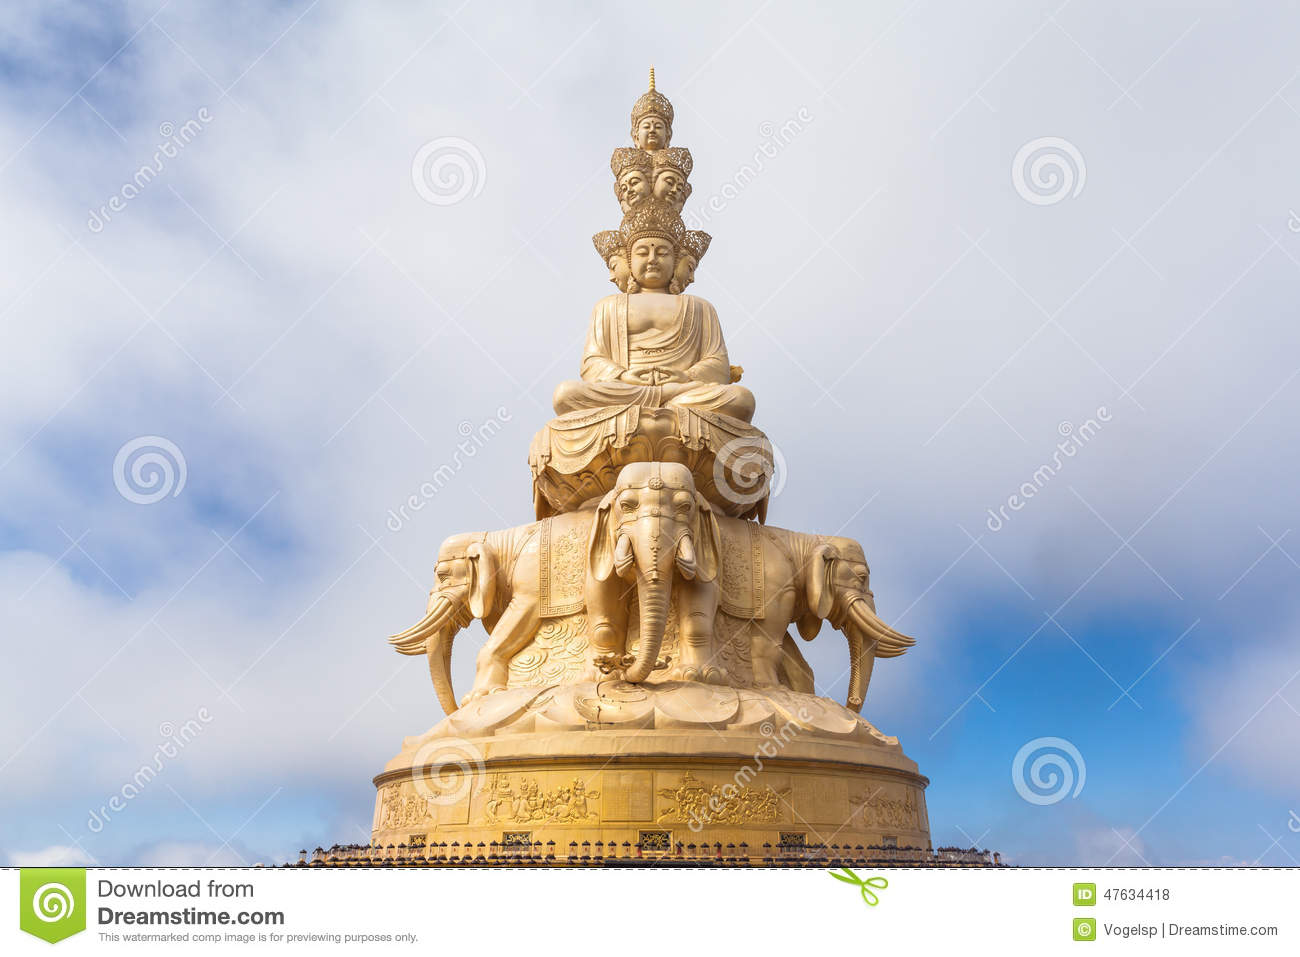 The Golden Buddha Statue On Top Of Emei Mountain In China